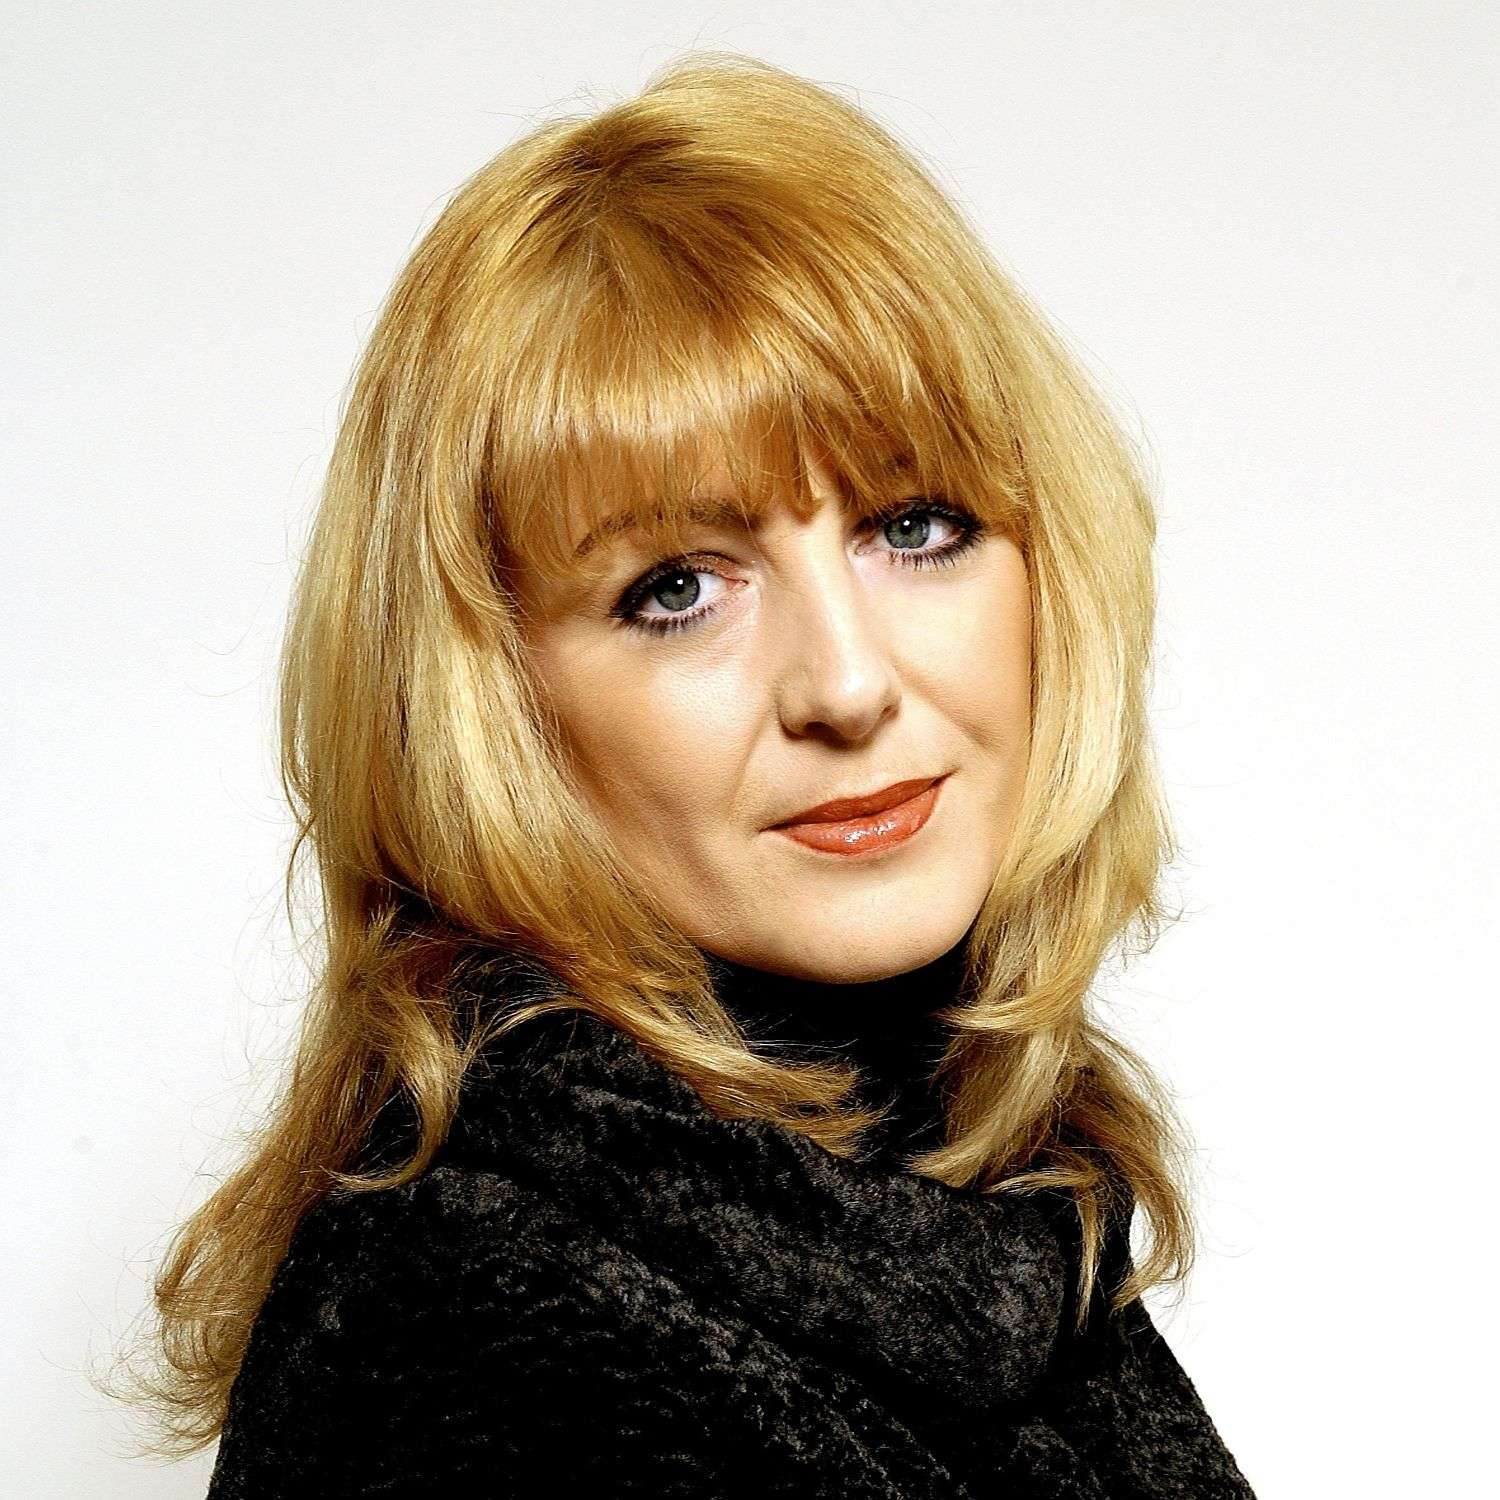 Hunter ... Yvette Fielding